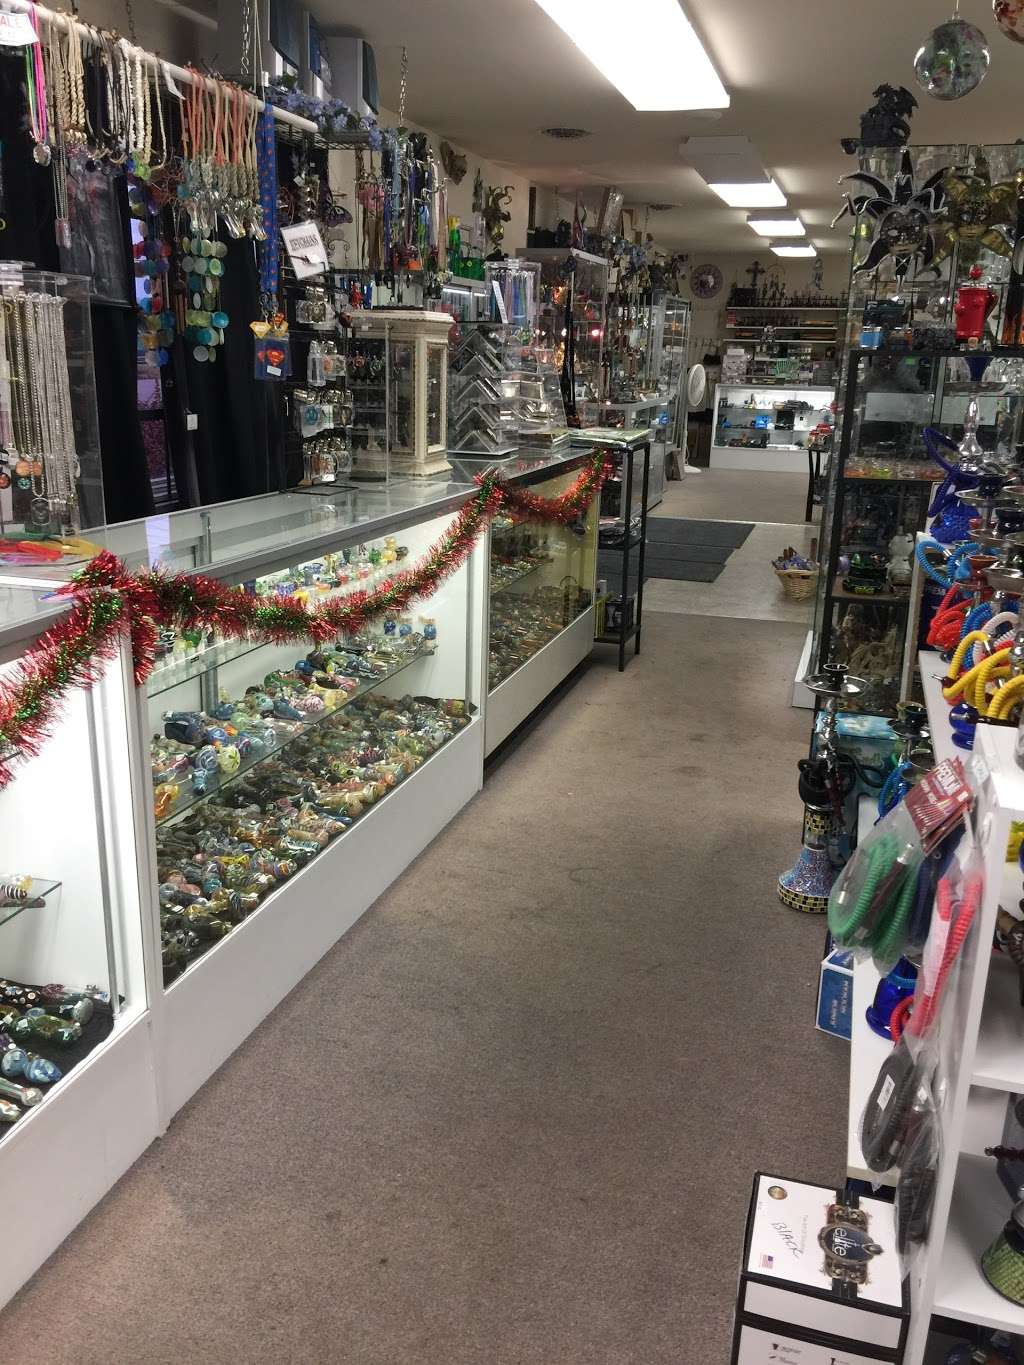 Crystal Dragon Fine Smoking Accessories & Gifts - store  | Photo 7 of 10 | Address: 3050 N Dupont Hwy # C, Dover, DE 19901, USA | Phone: (302) 730-1264